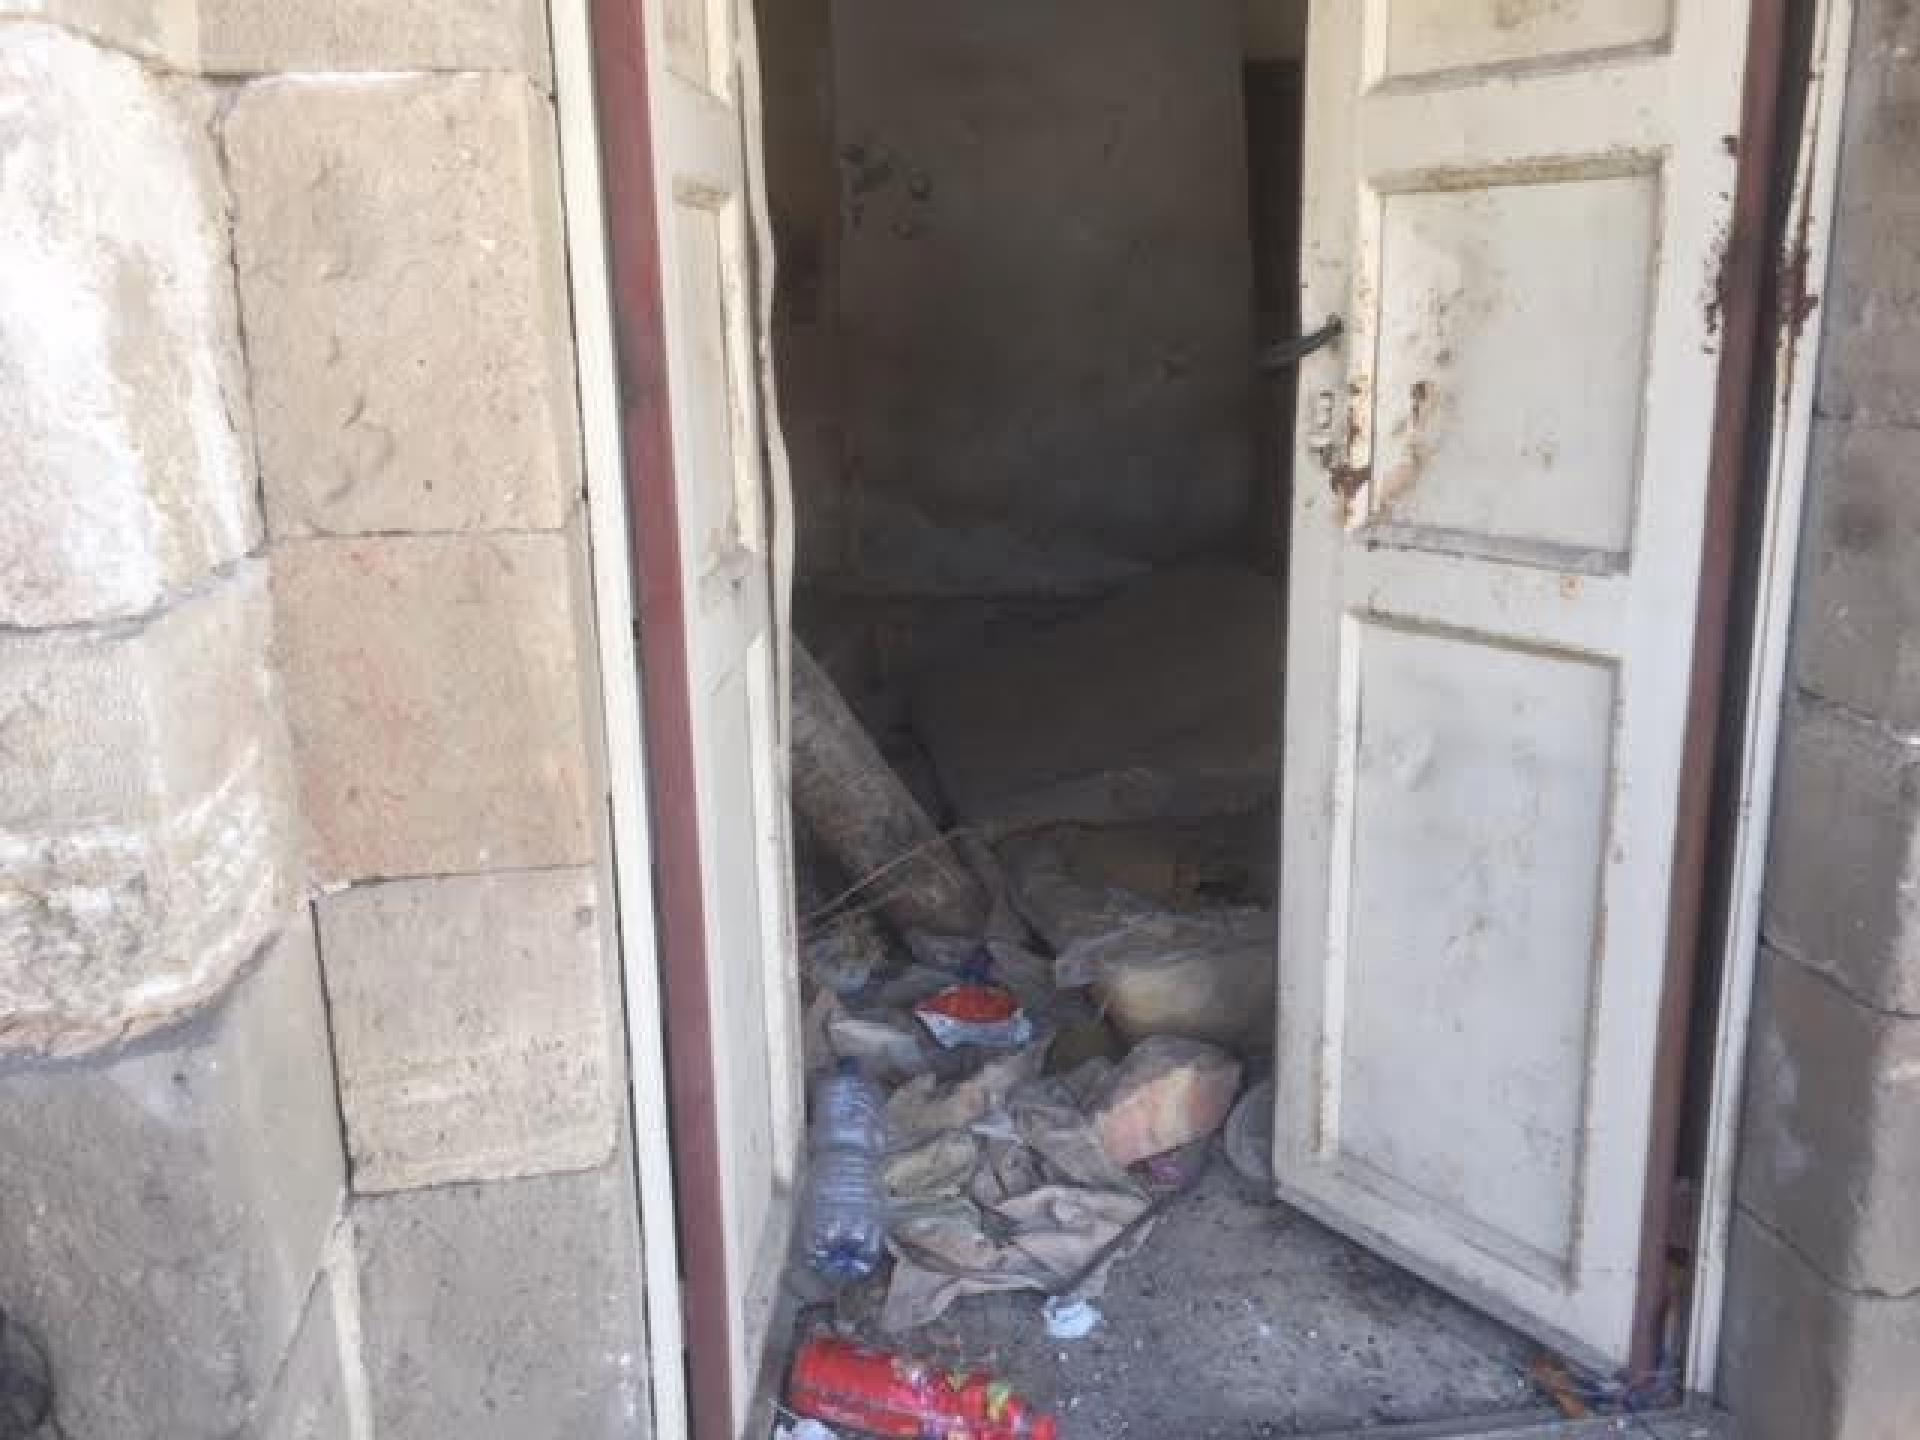 The first house in Shuhada street. The door which had been  welded is open